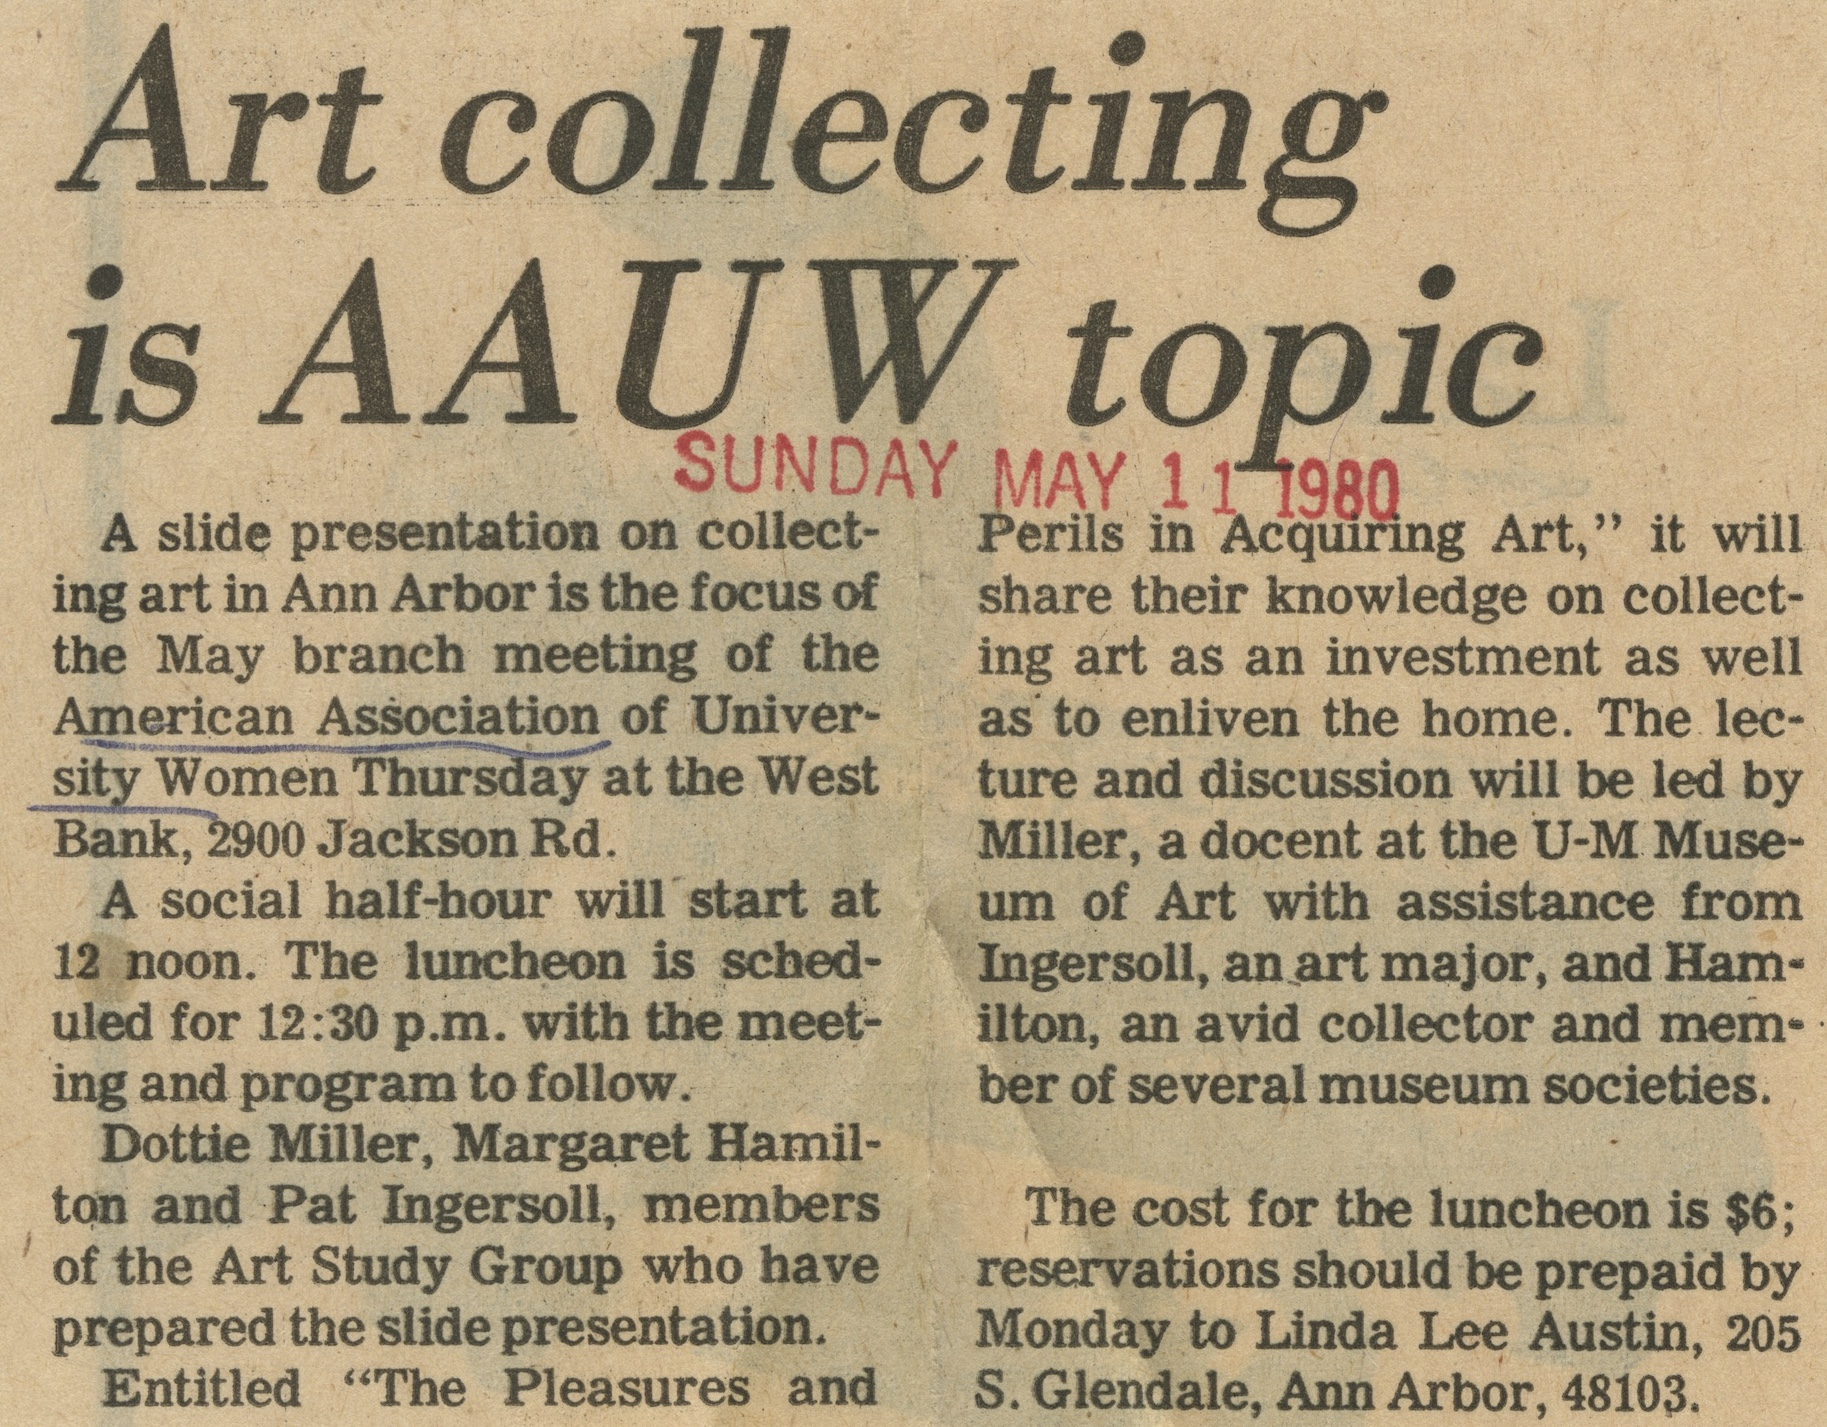 Art Collecting Is AAUW Topic image